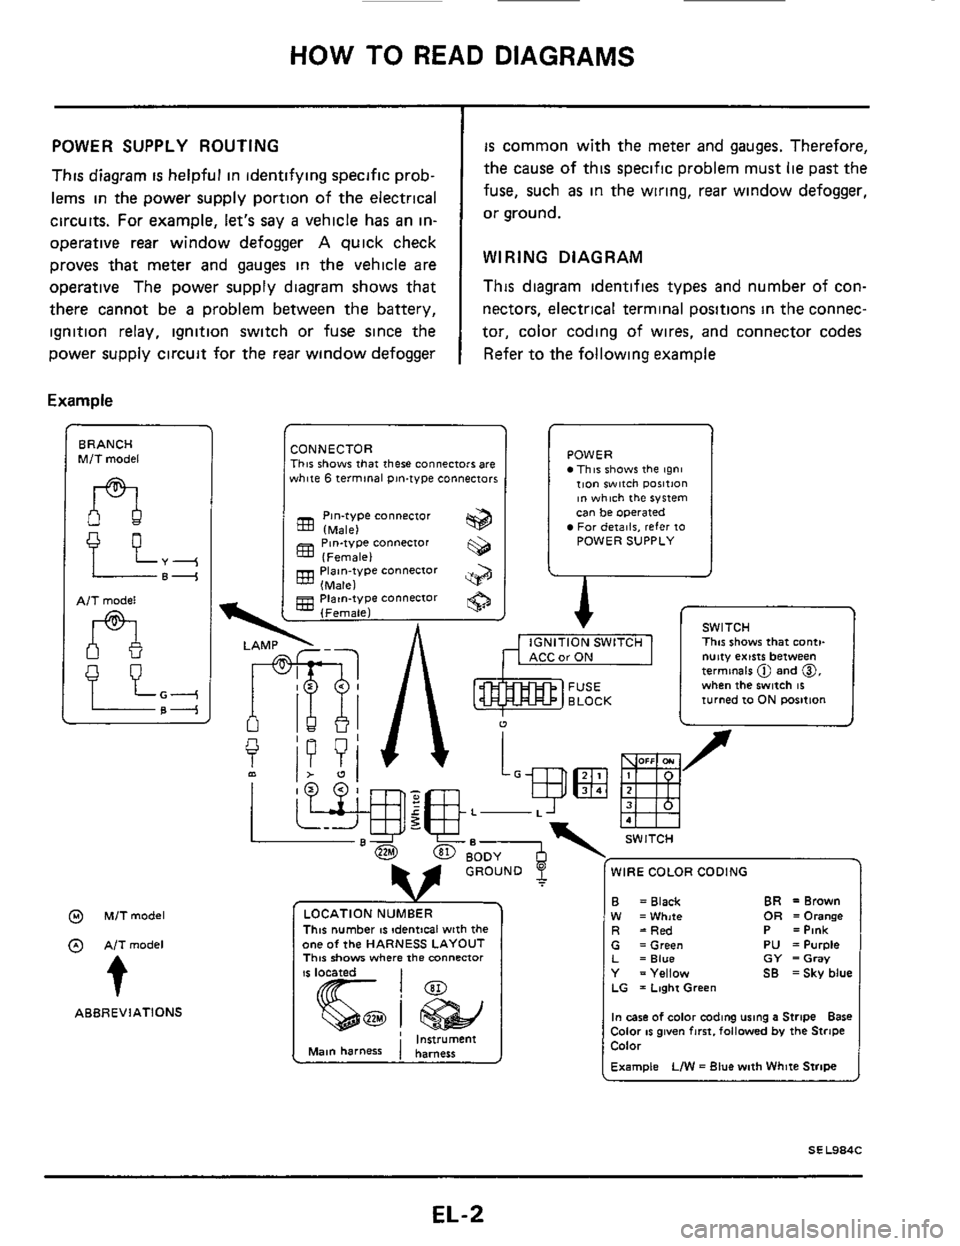 NISSAN 300ZX 1984 Z31 Electrical System Workshop Manual, Page 2